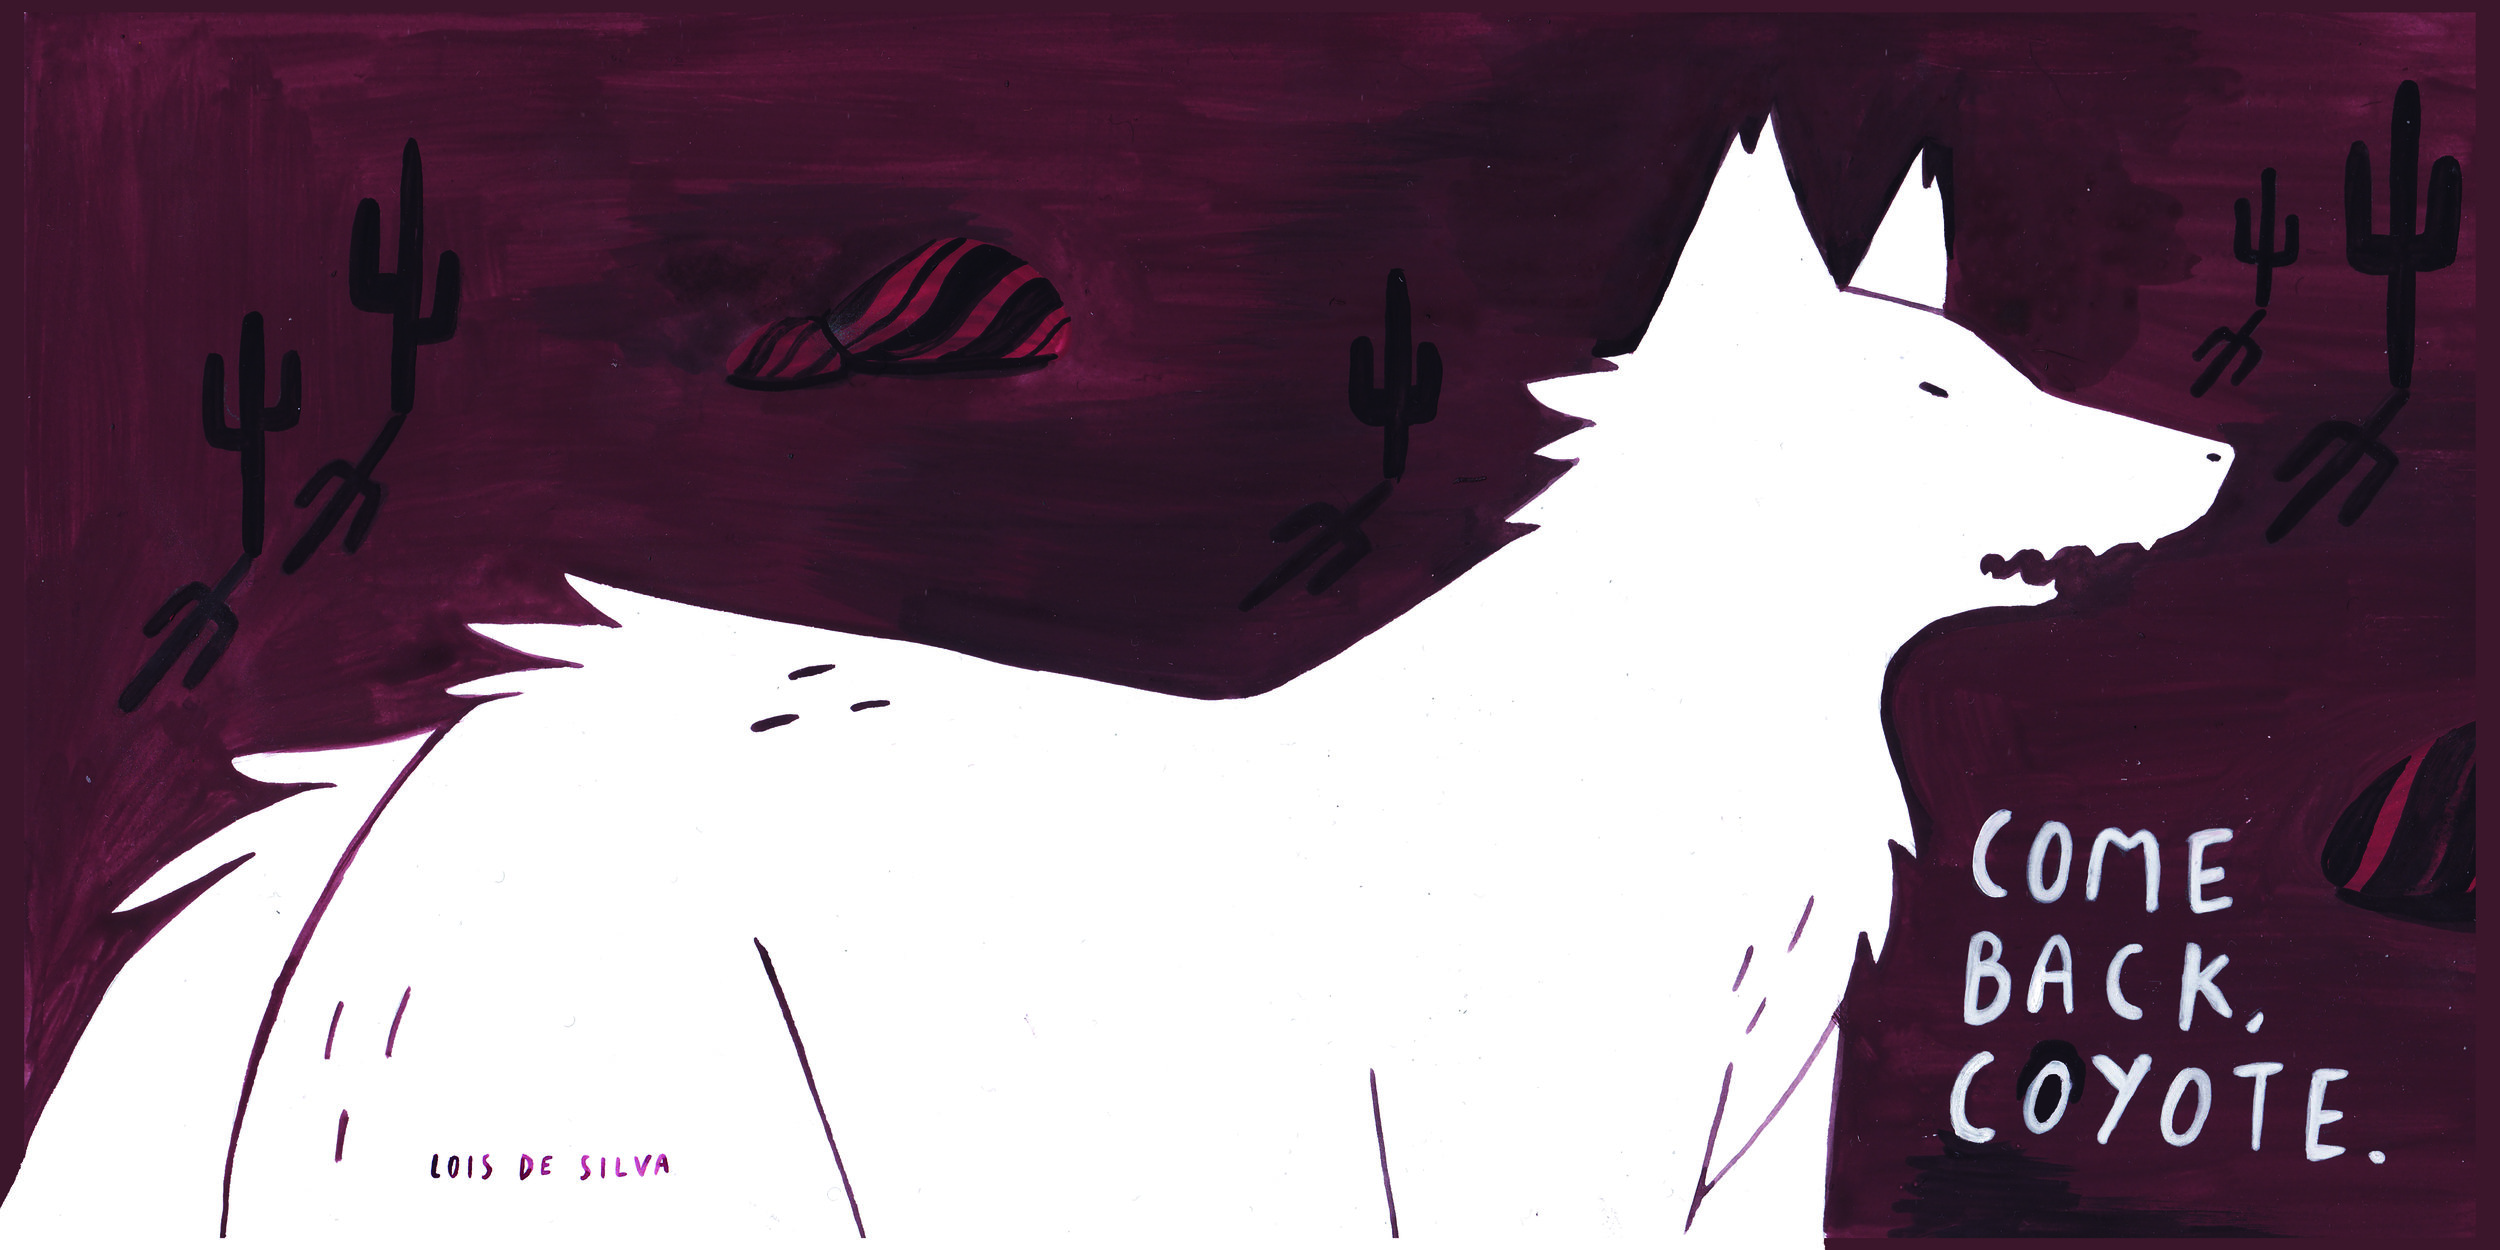 new Cover Coyote.jpg